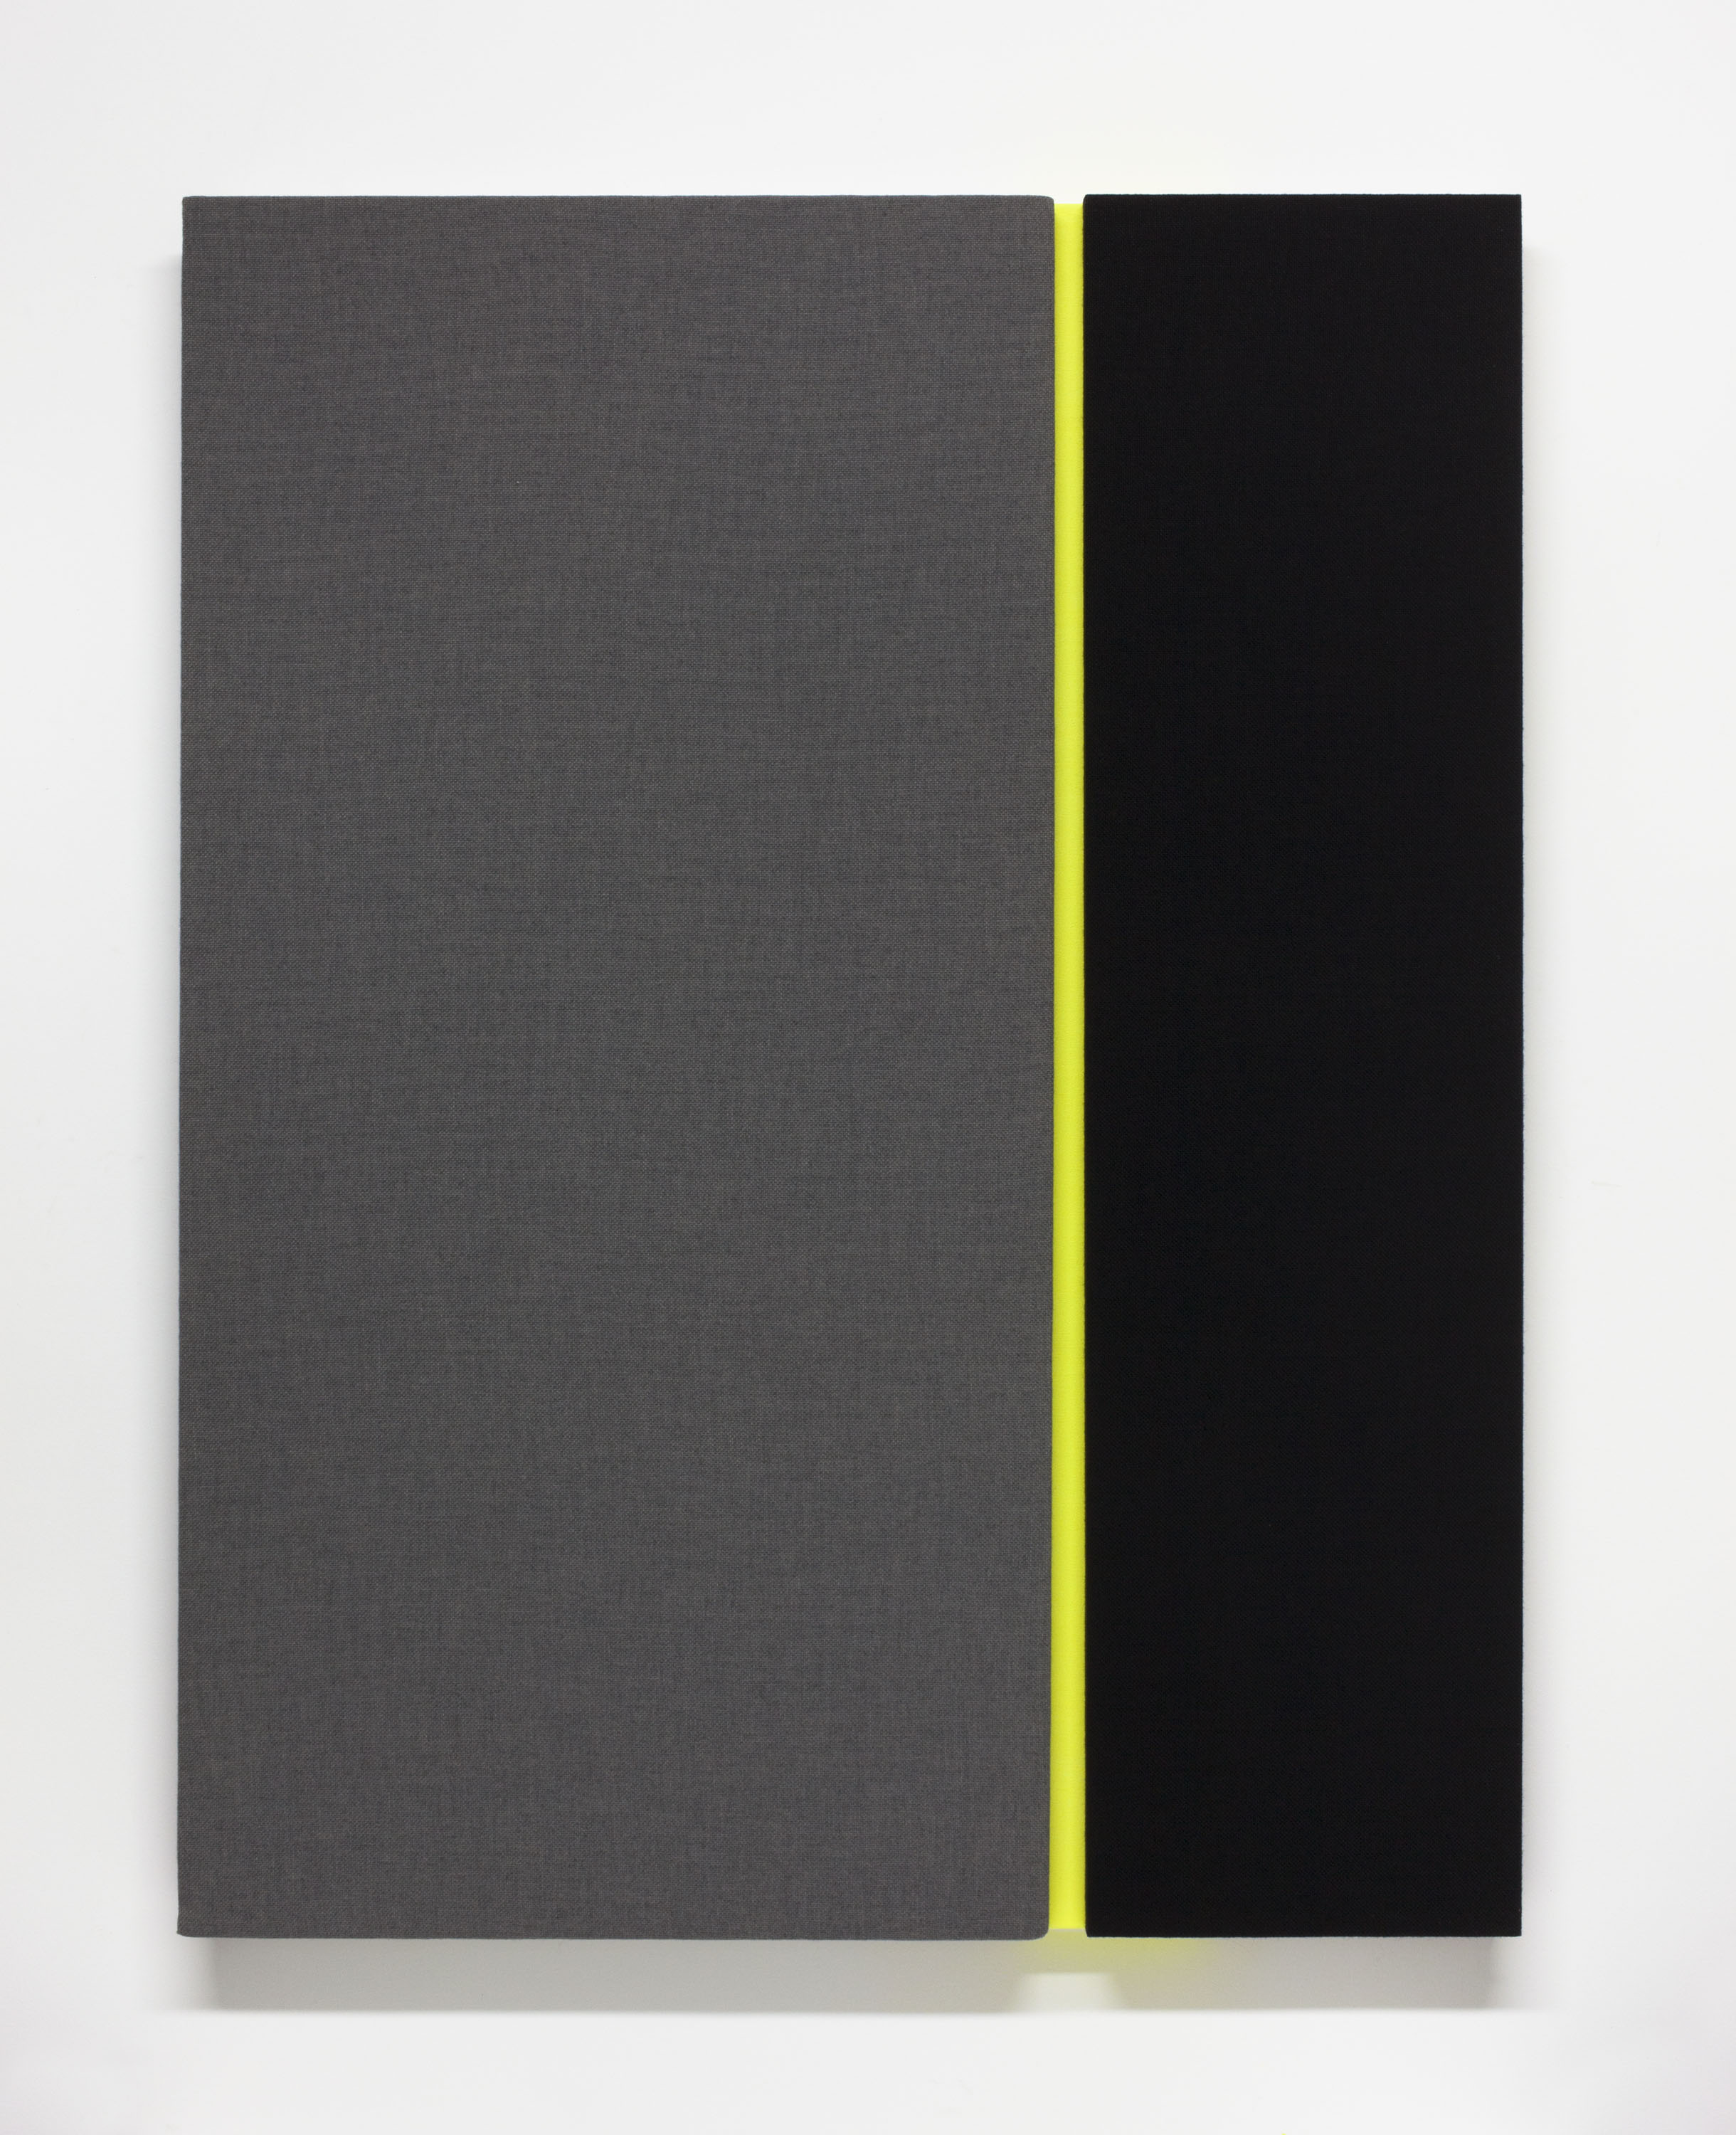 Bold, Double, Barline (variation #1)Acoustic absorber panel and acrylic paint on canvas, 36 x 48 inches, 2013.